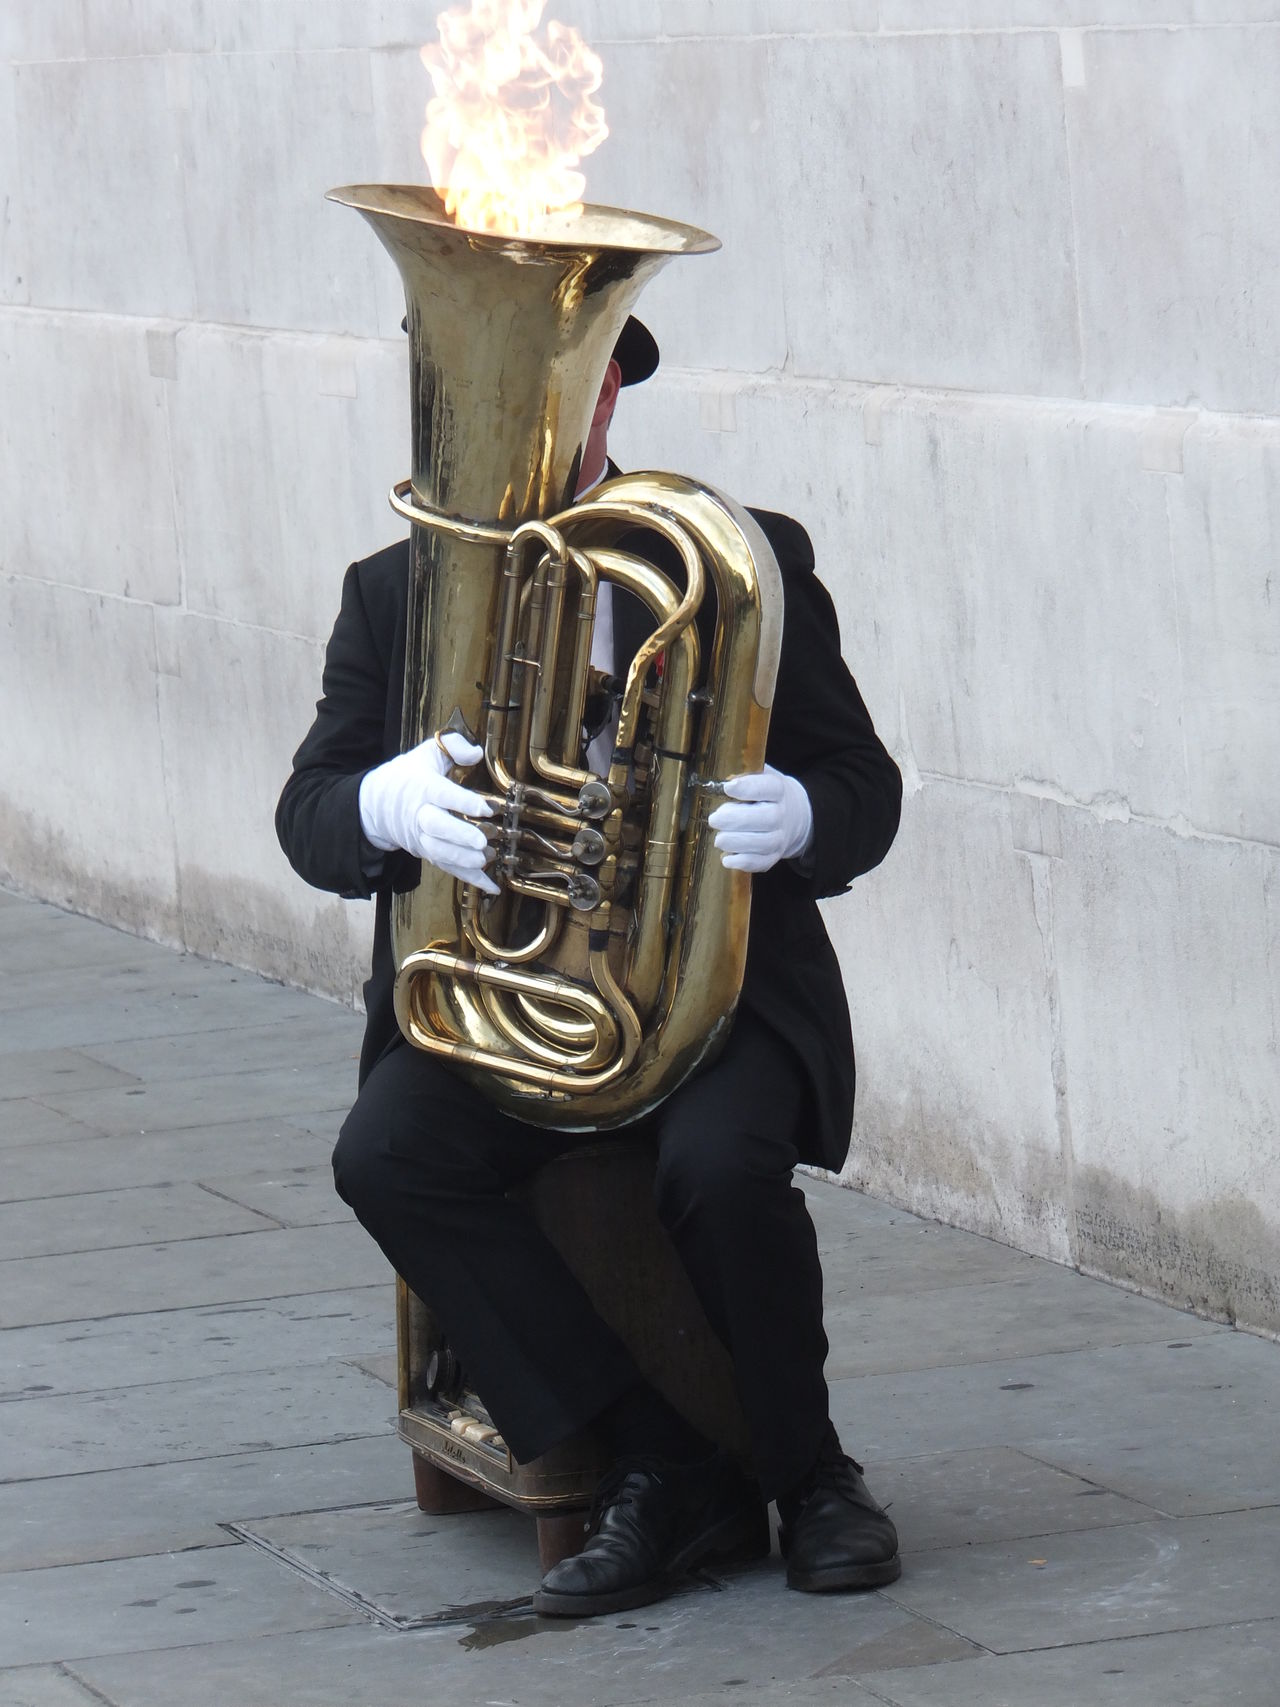 On Fire! Arts Culture And Entertainment Composition Fire Flames Full Frame Full Length Fun GB London Man Music Musical Instrument Musician On Fire One Person Outdoor Photography Performance Performer  Playing Sitting Street Performer Uk Unusual Wind Instrument